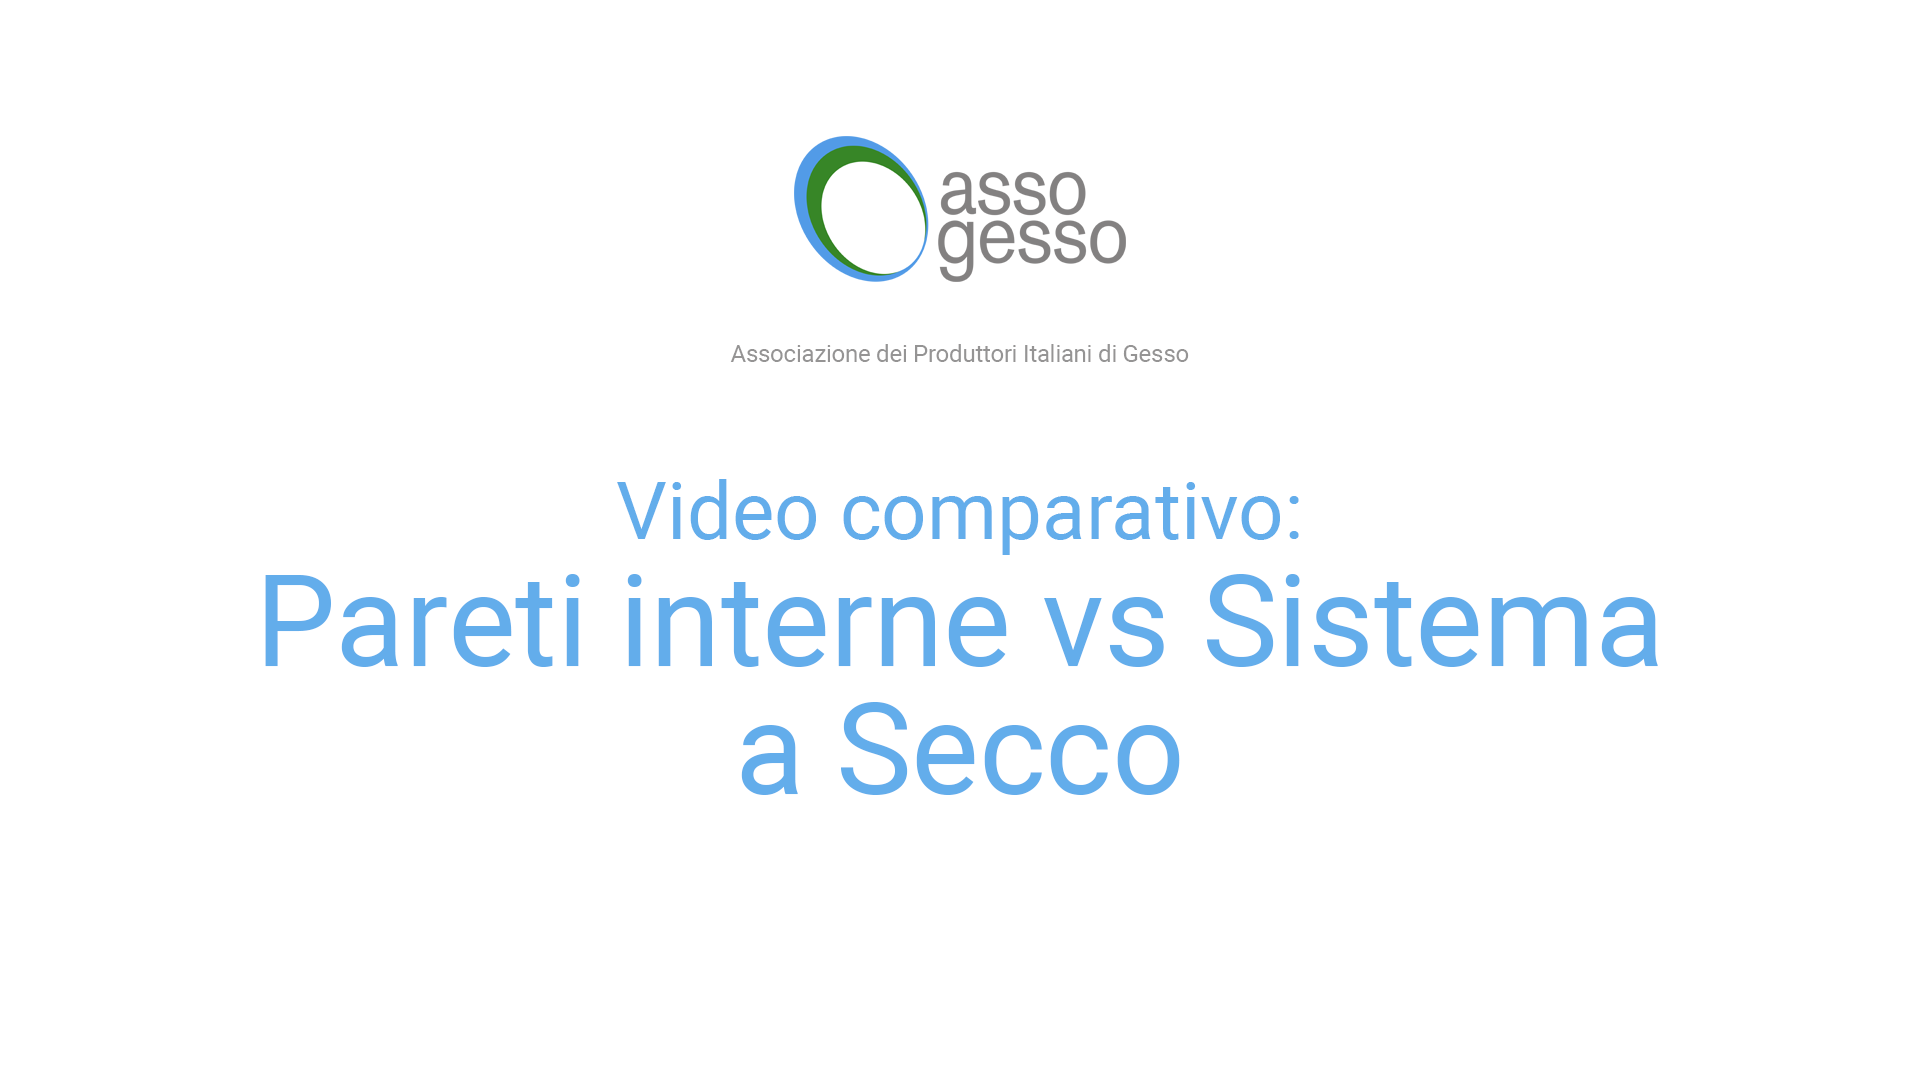 Video comparativo Pareti interne e sistemi a secco